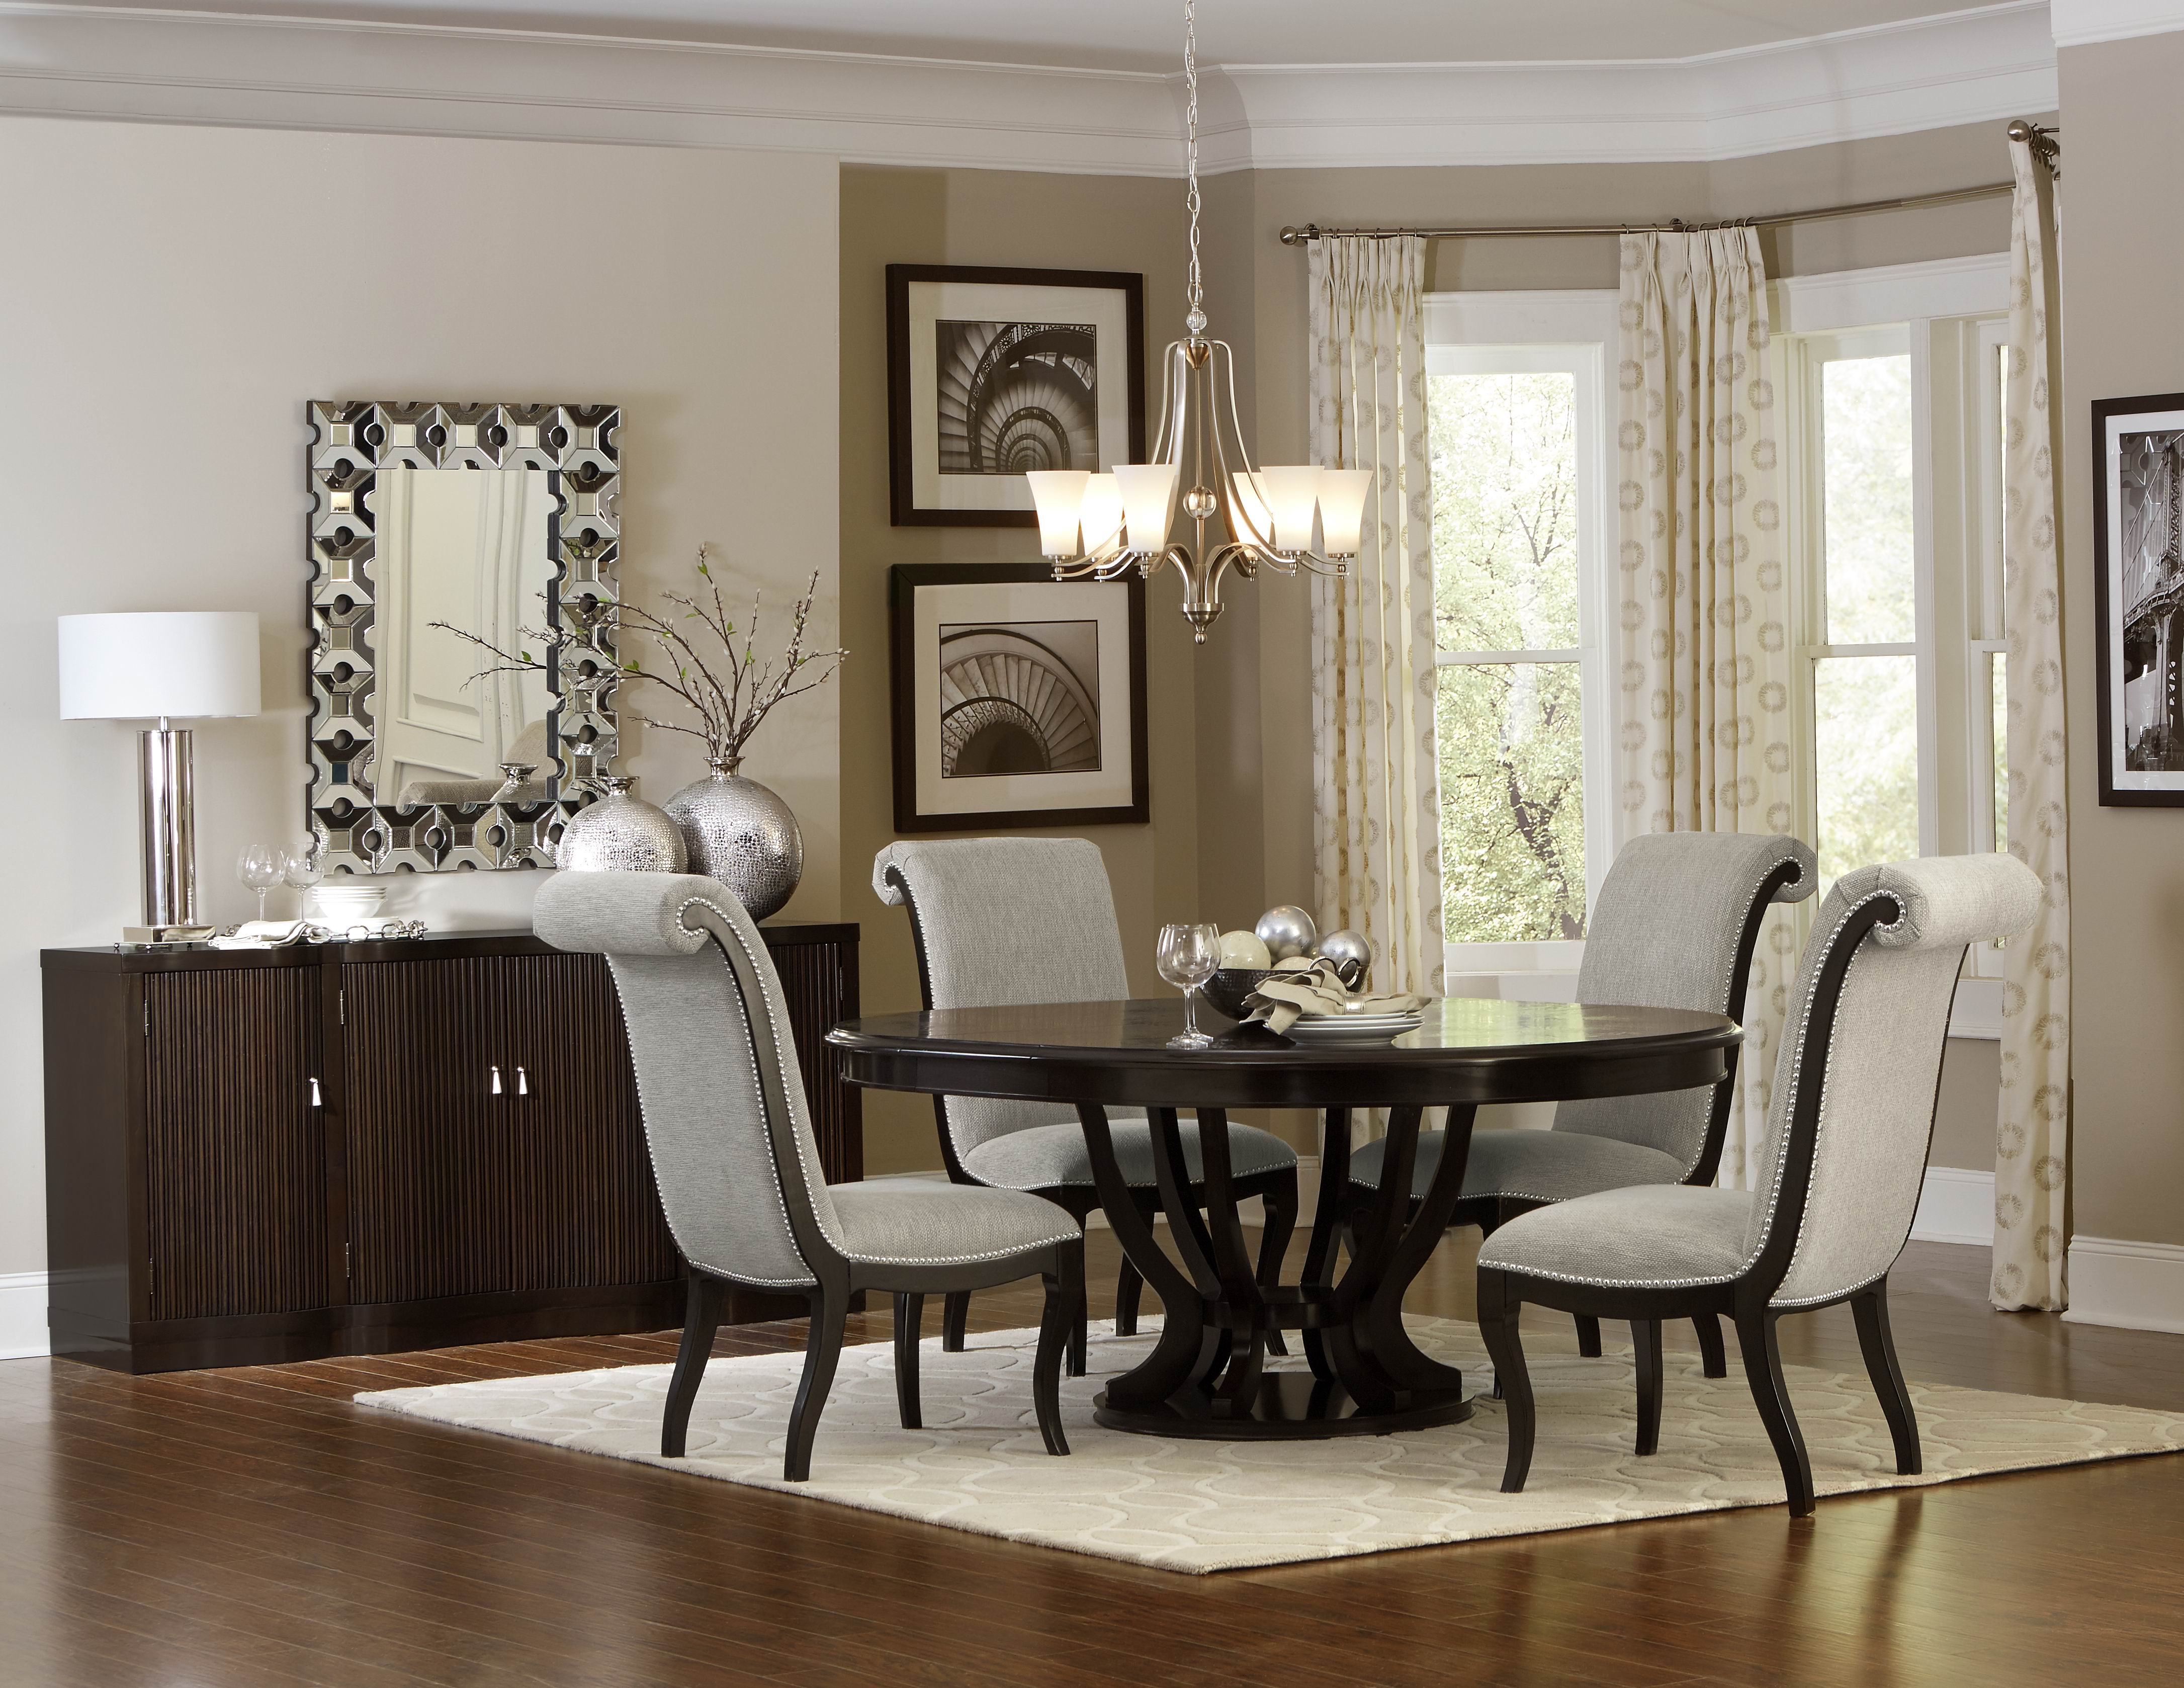 Savion Collection Contemporary Style Espresso & Natural Tone 5 Pc Oval Design Dining Table Set Inside Contemporary Espresso Dining Buffets (View 29 of 30)